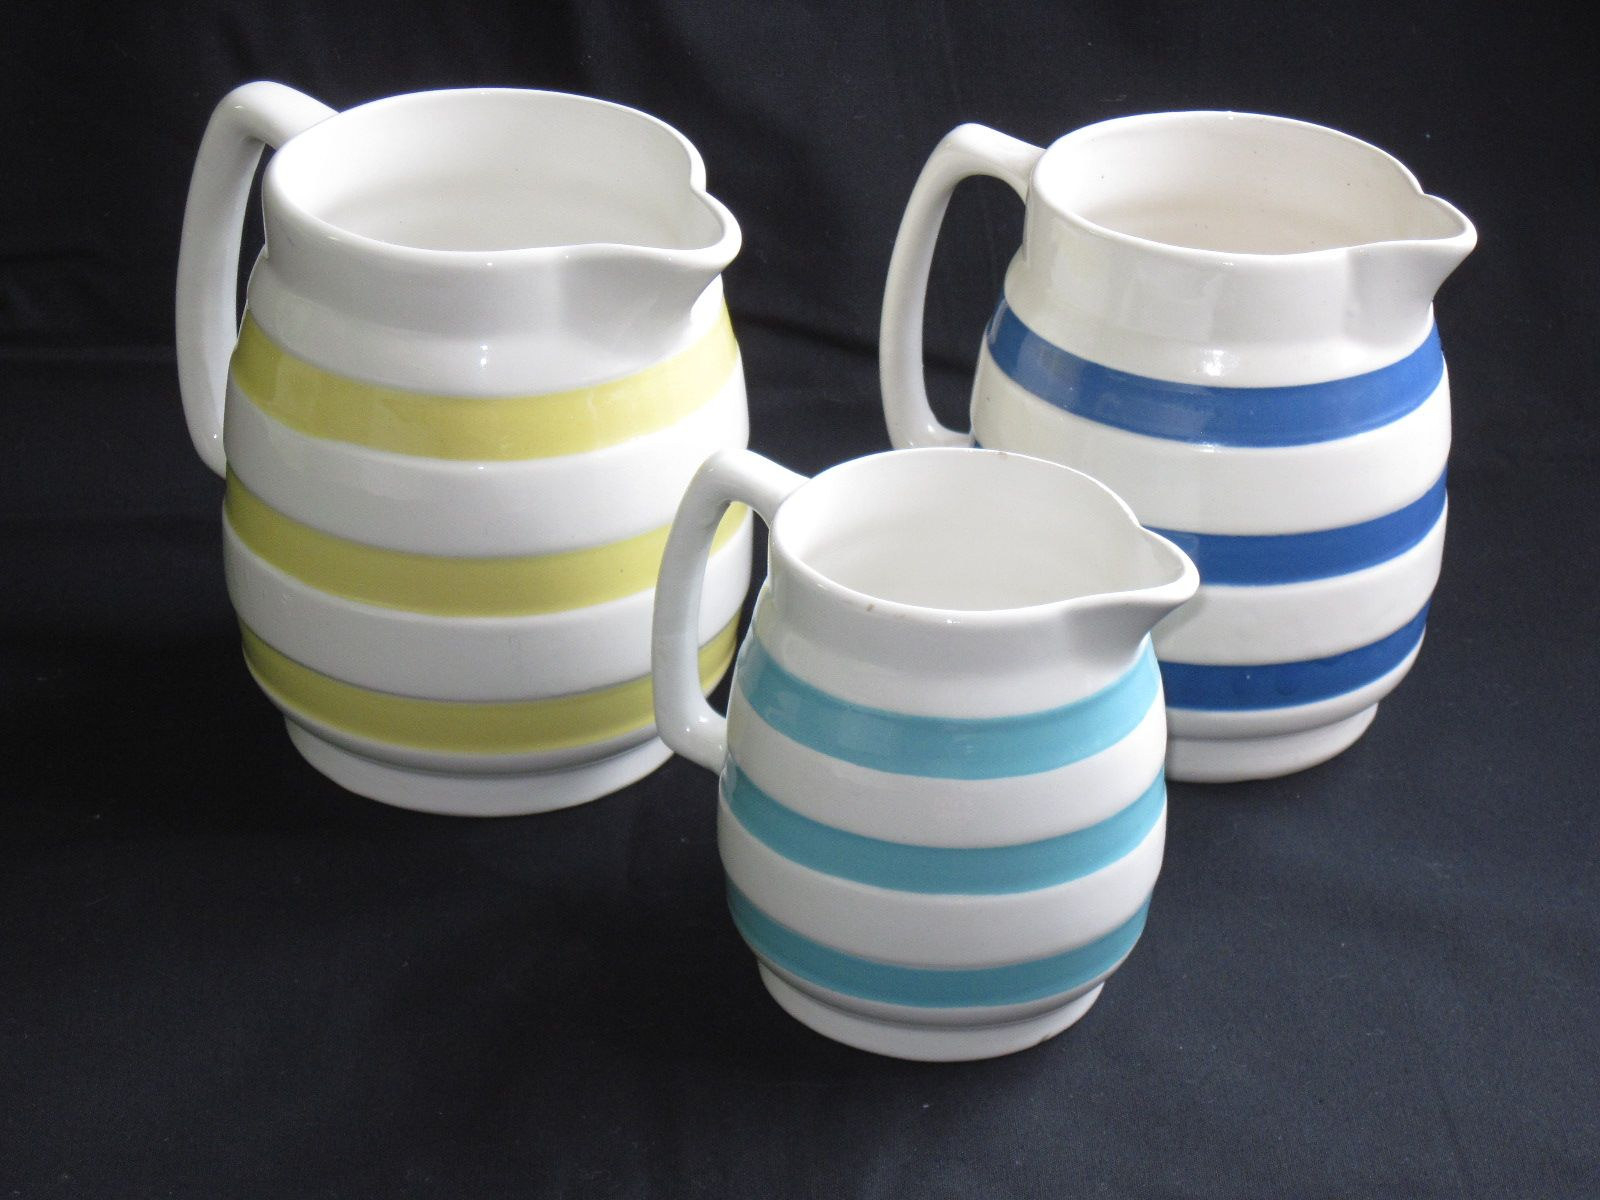 Striped Carrigaline Pottery From Ireland Vintage Dishware Vintage Dishes Pottery